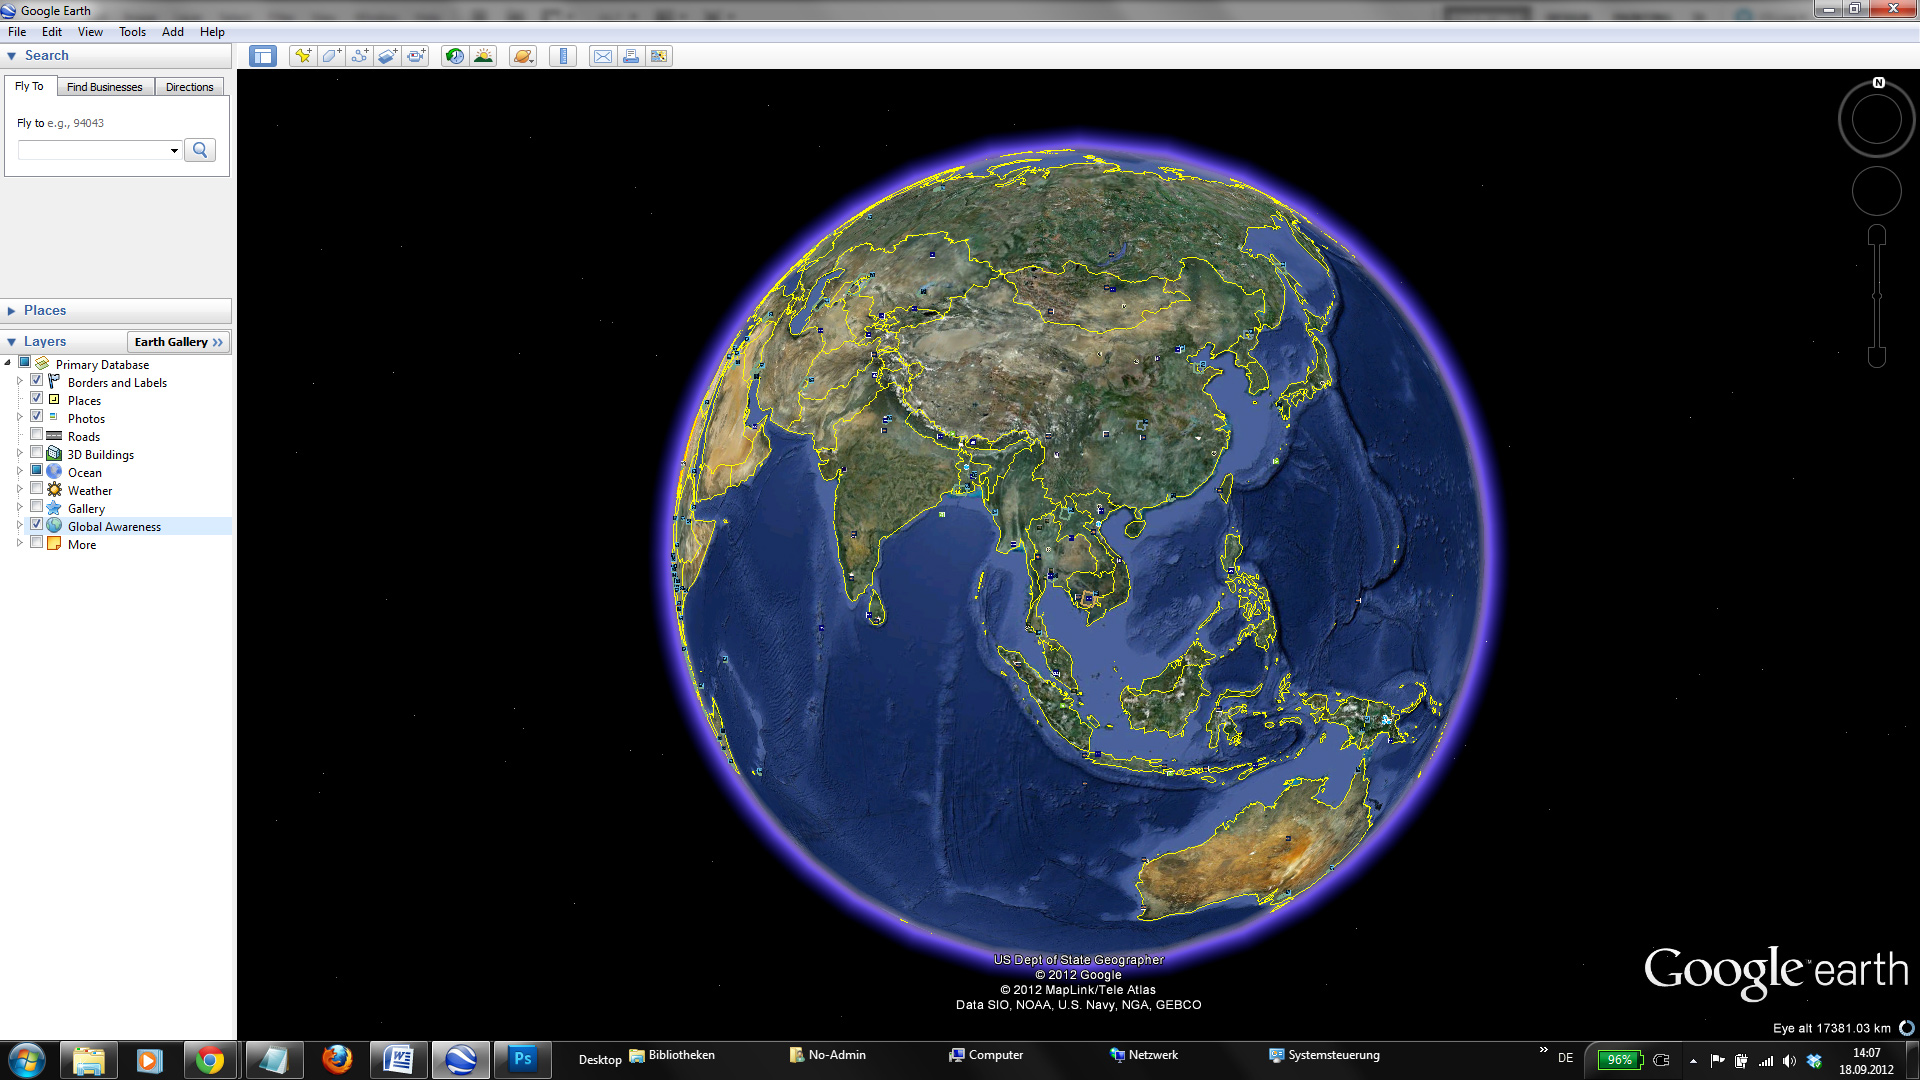 The three-dimensional globe is the the centre-piece of Google Earth